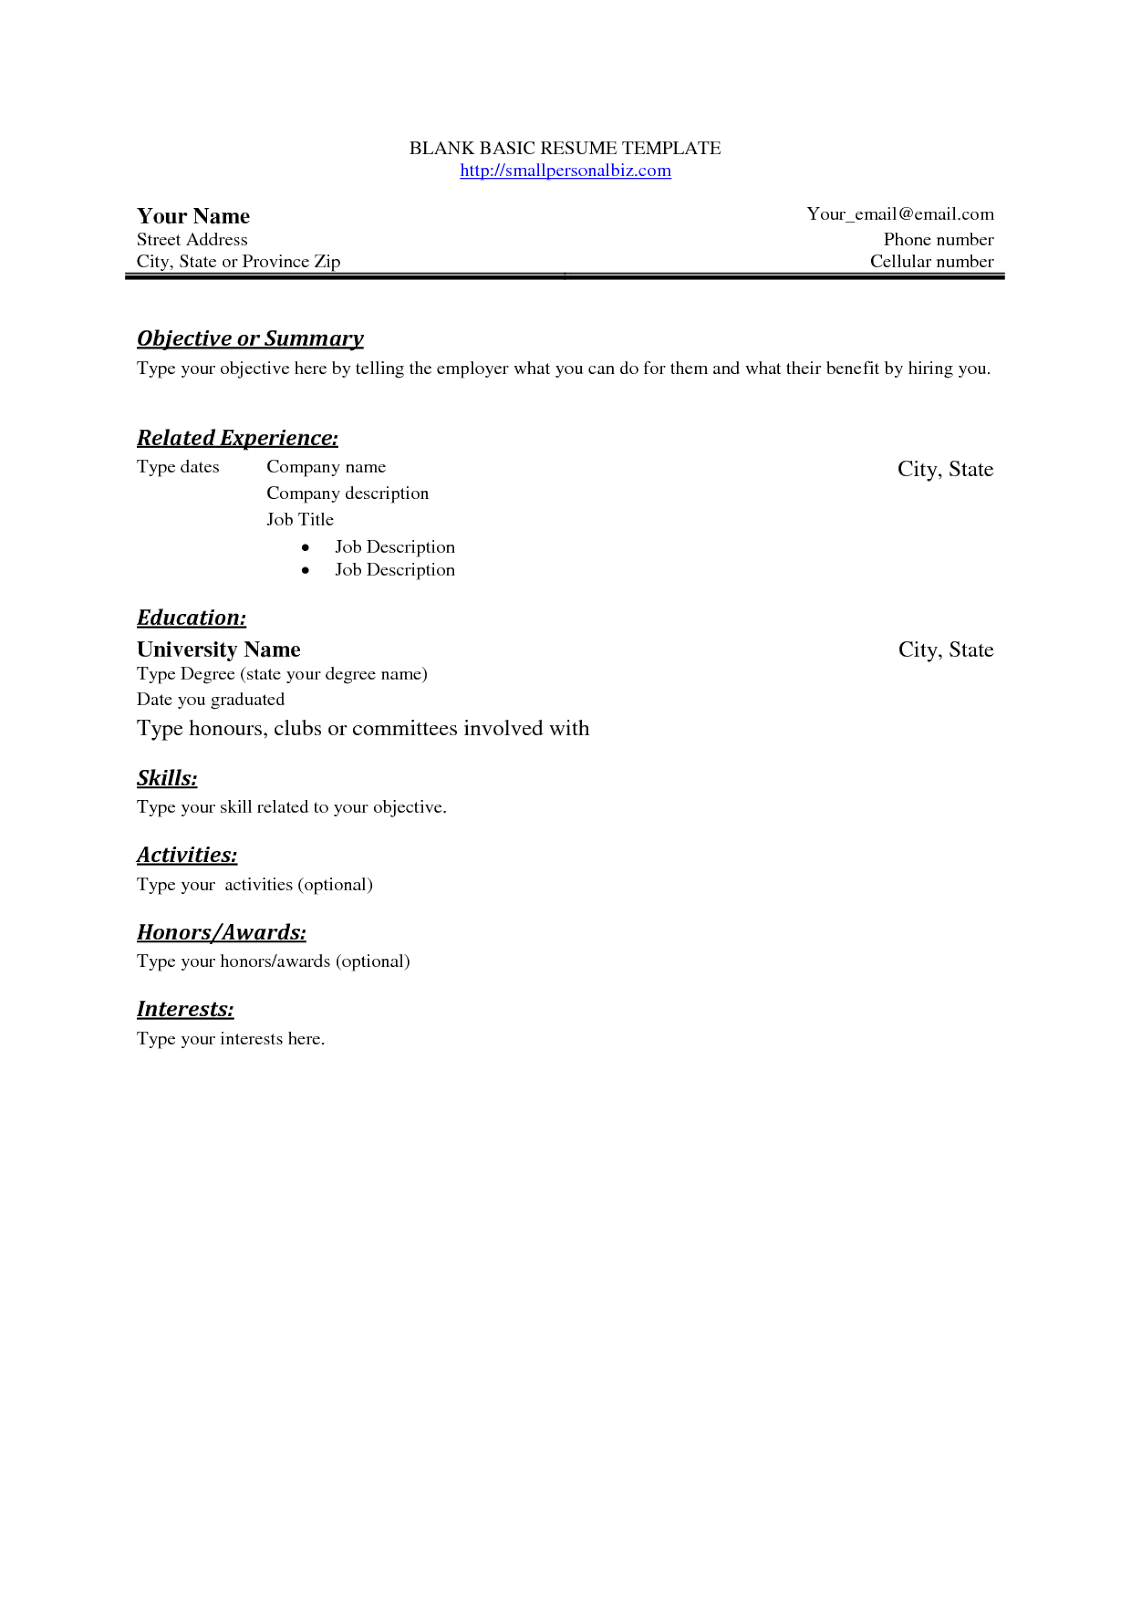 Saving College Students: Free Homework Help Online blank resume ...